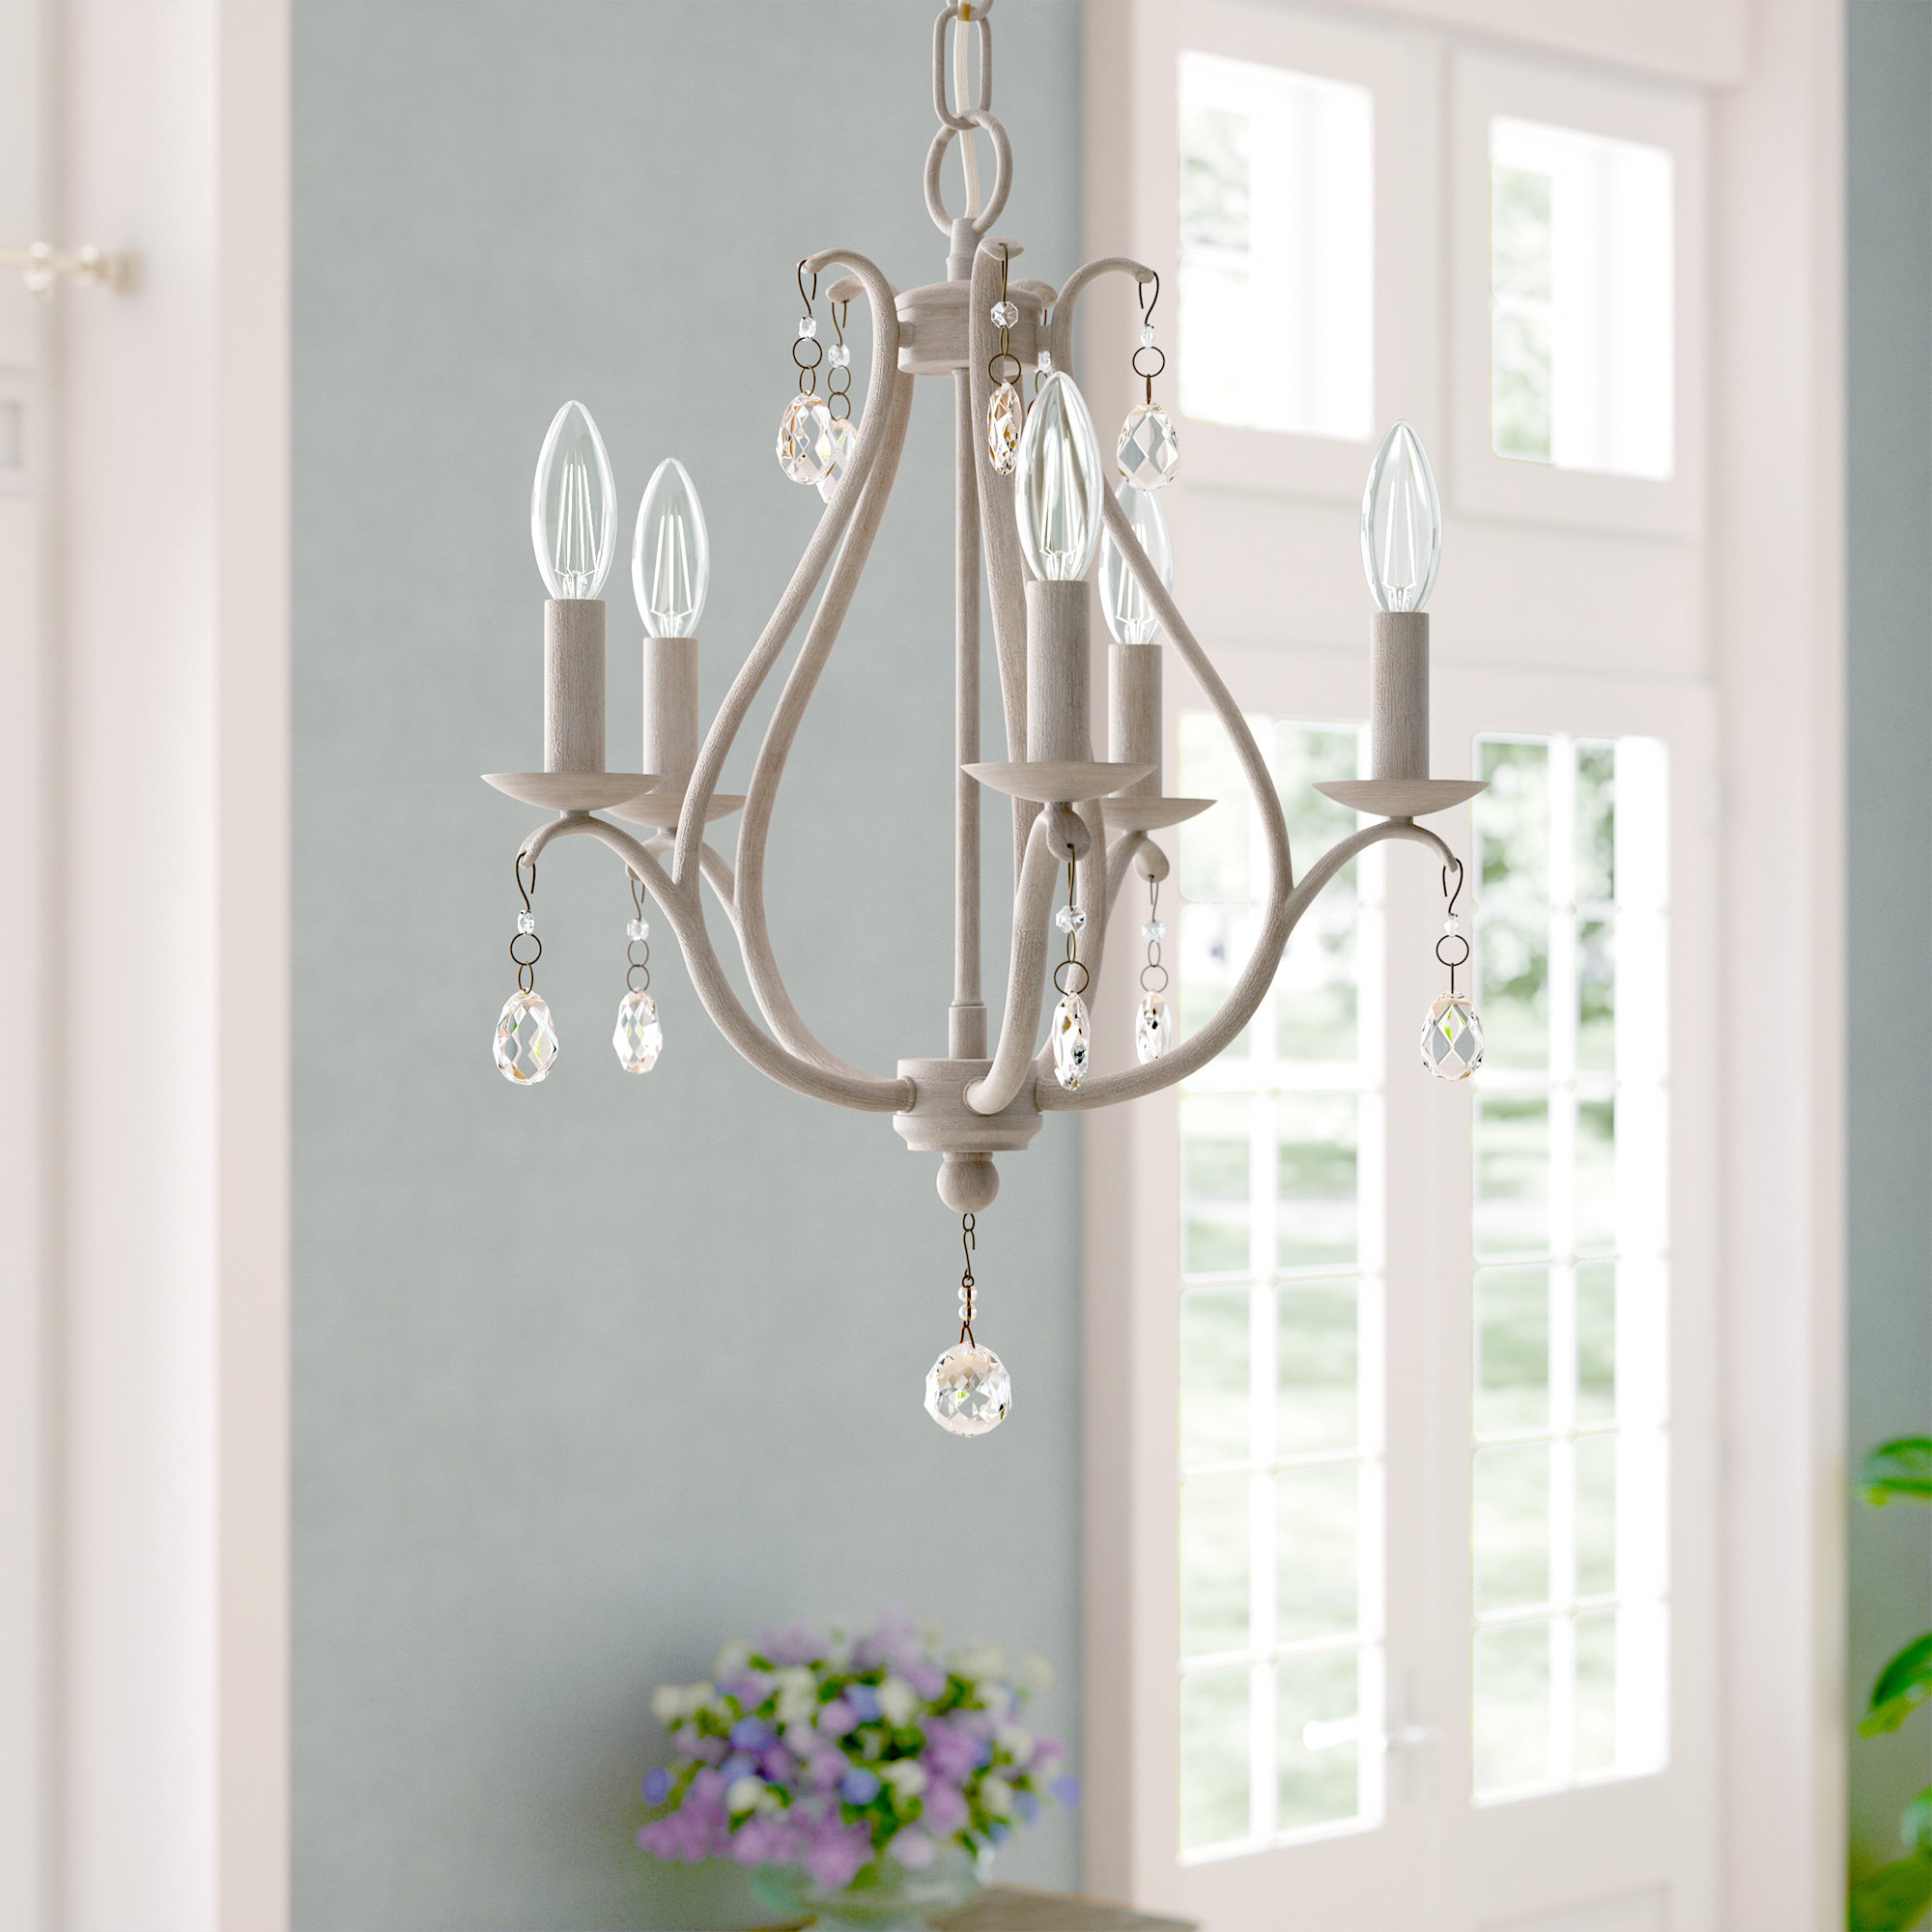 Most Recently Released Blanchette 5 Light Candle Style Chandeliers Intended For Palumbo 5 Light Candle Style Chandelier (View 14 of 20)